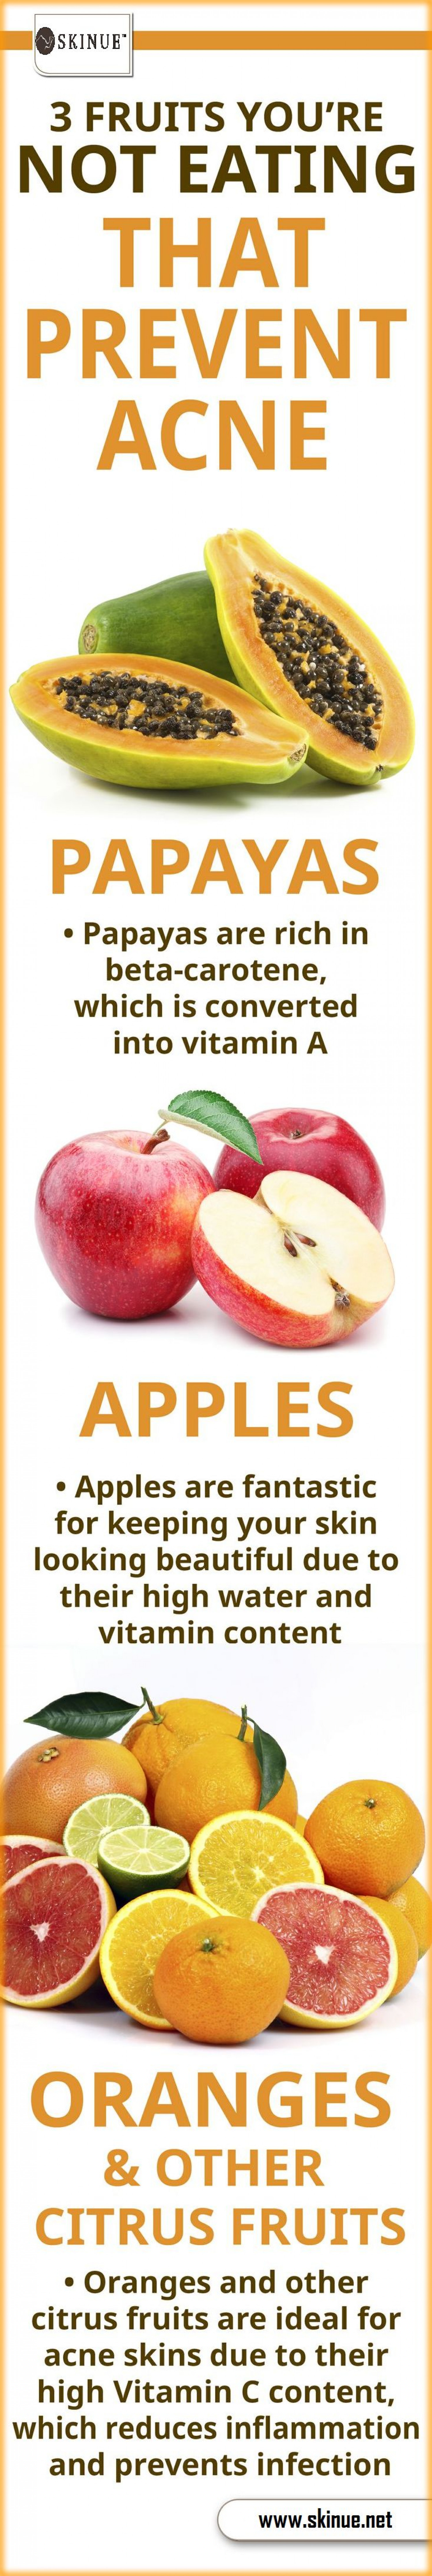 3 Fruits  that Prevent Acne Infographic